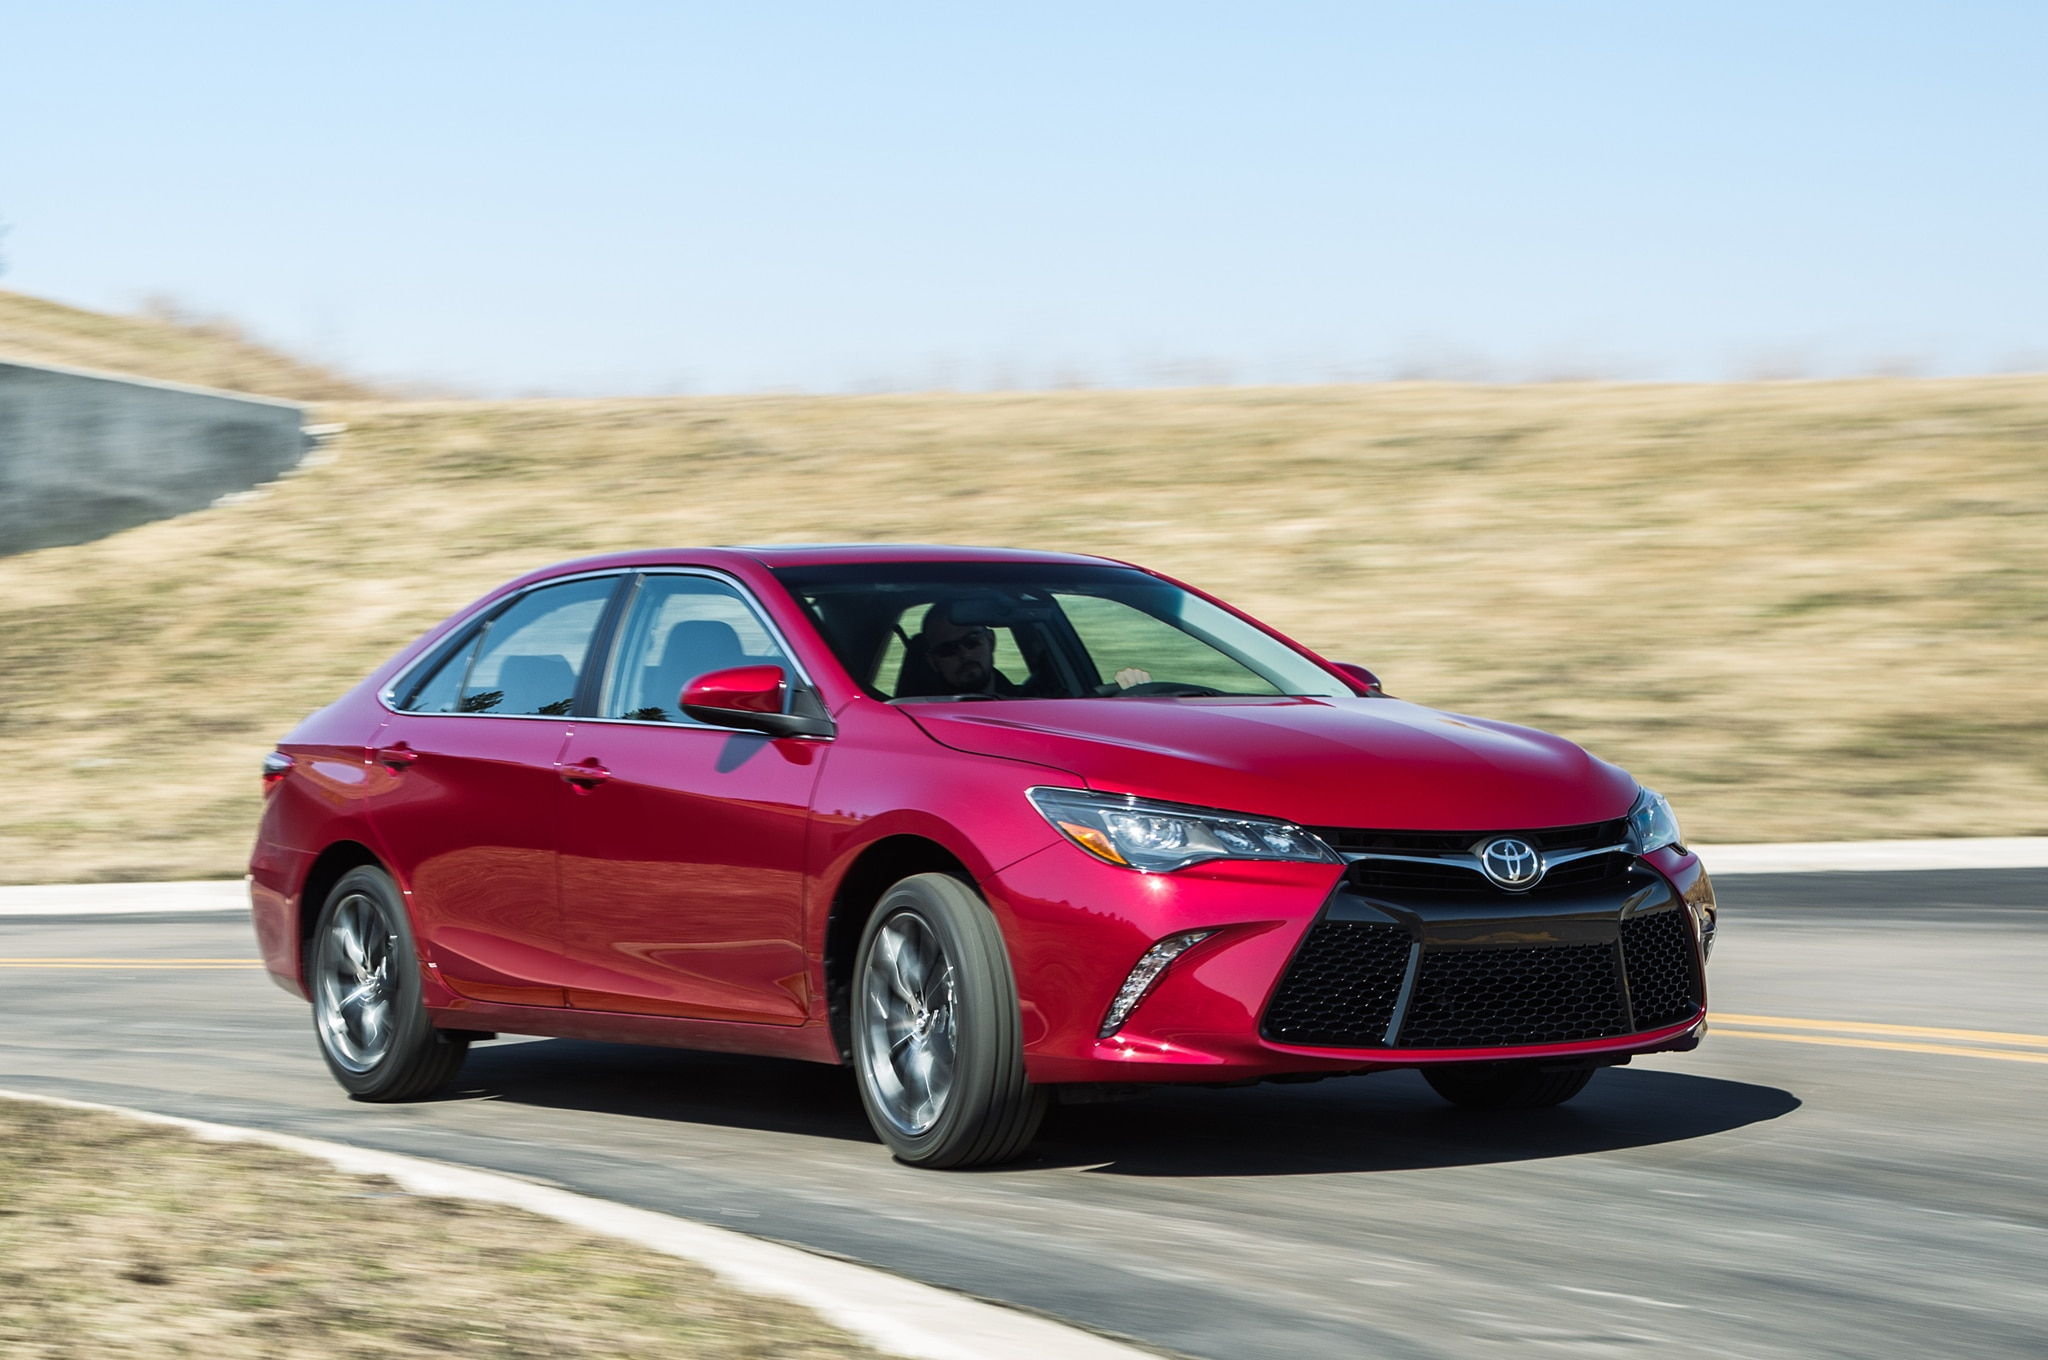 2015 Toyota Camry Profile In Motion1